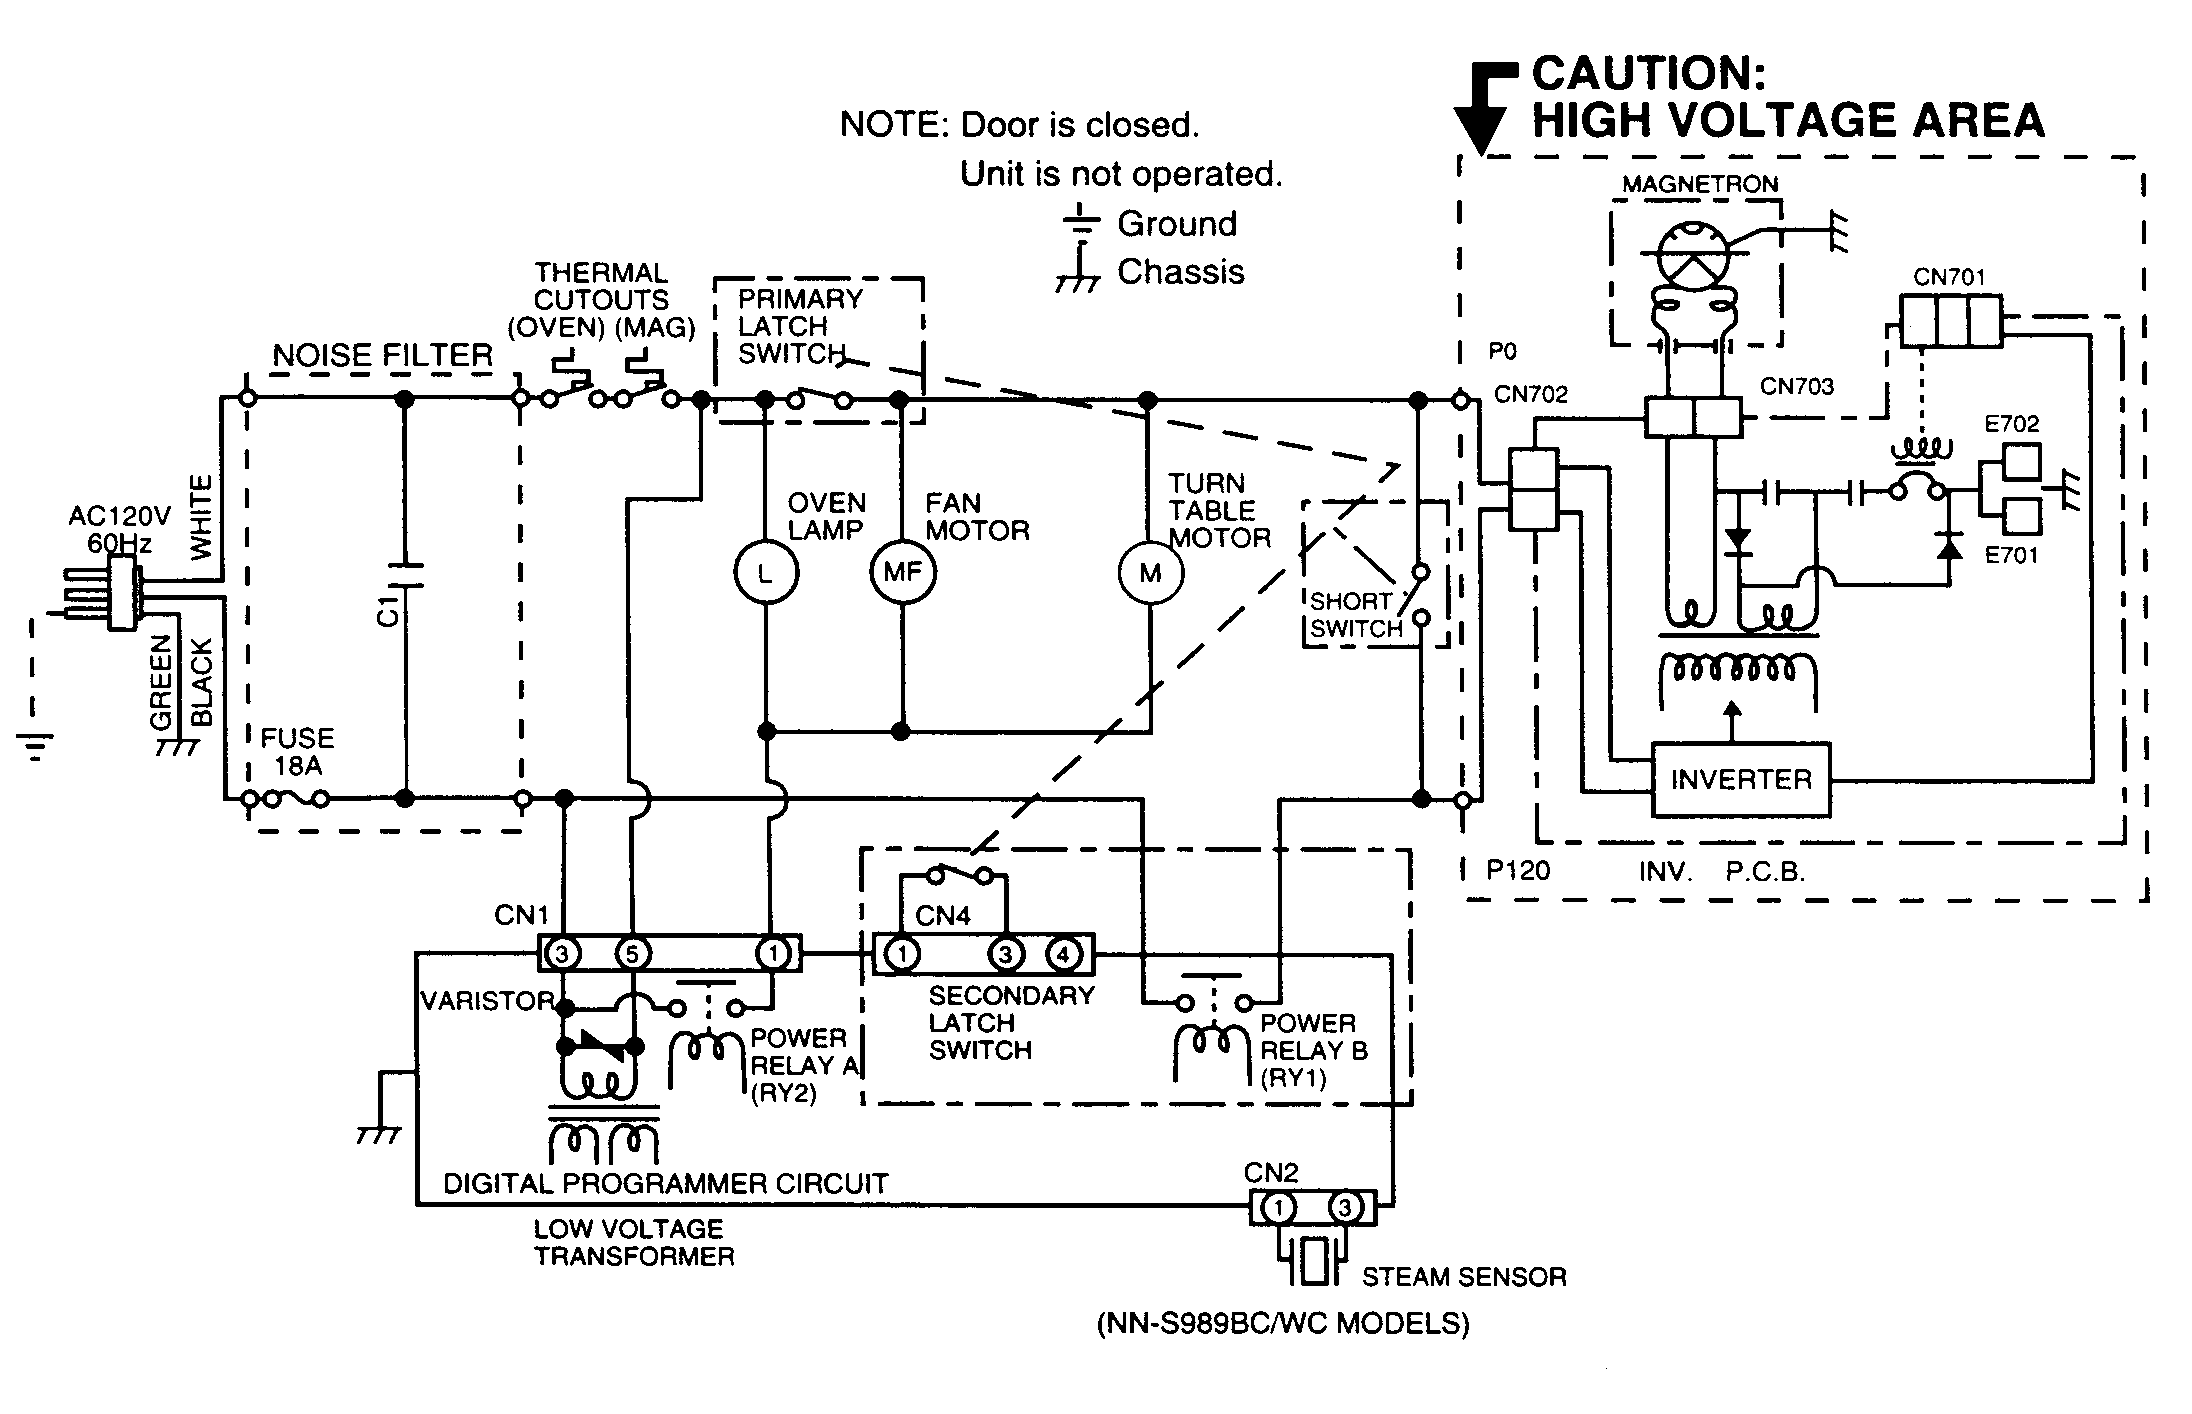 microwave over the range parts diagram wiring diagram